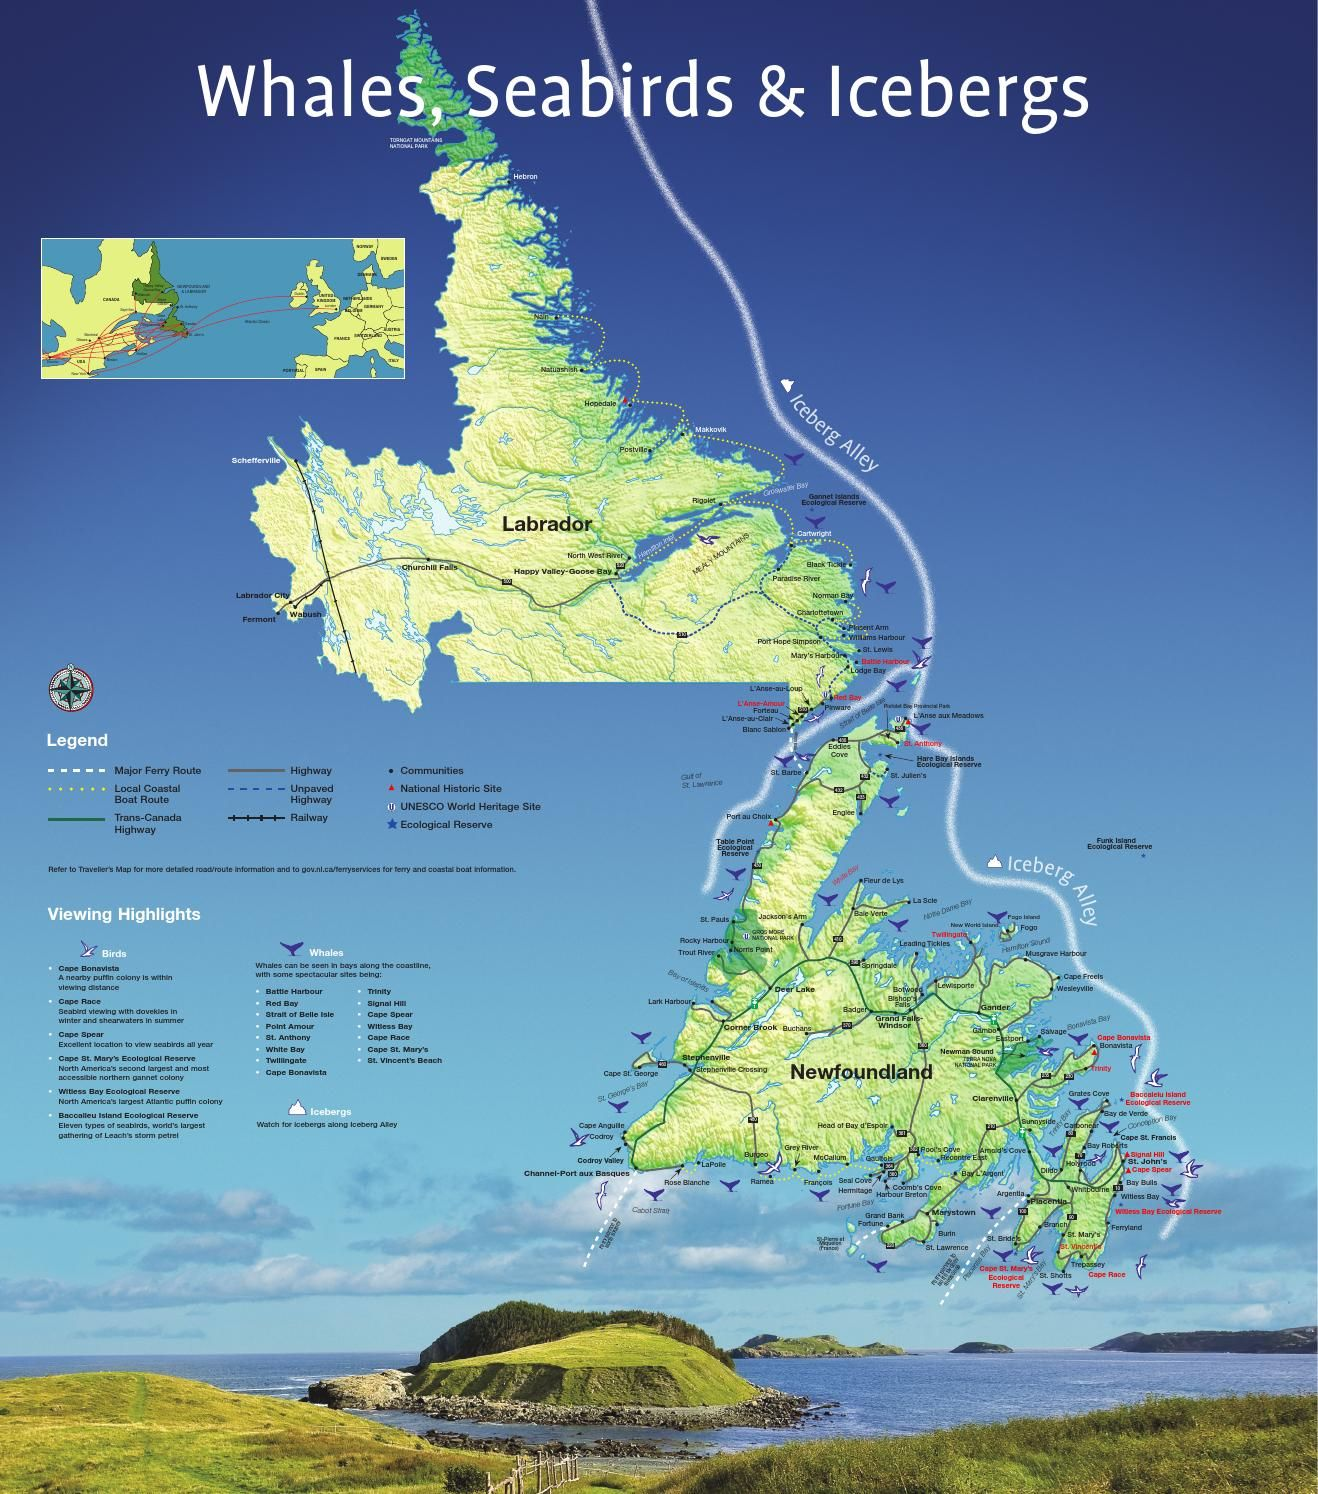 Whales birds and icebergs map Labradors Bird and Newfoundland canada